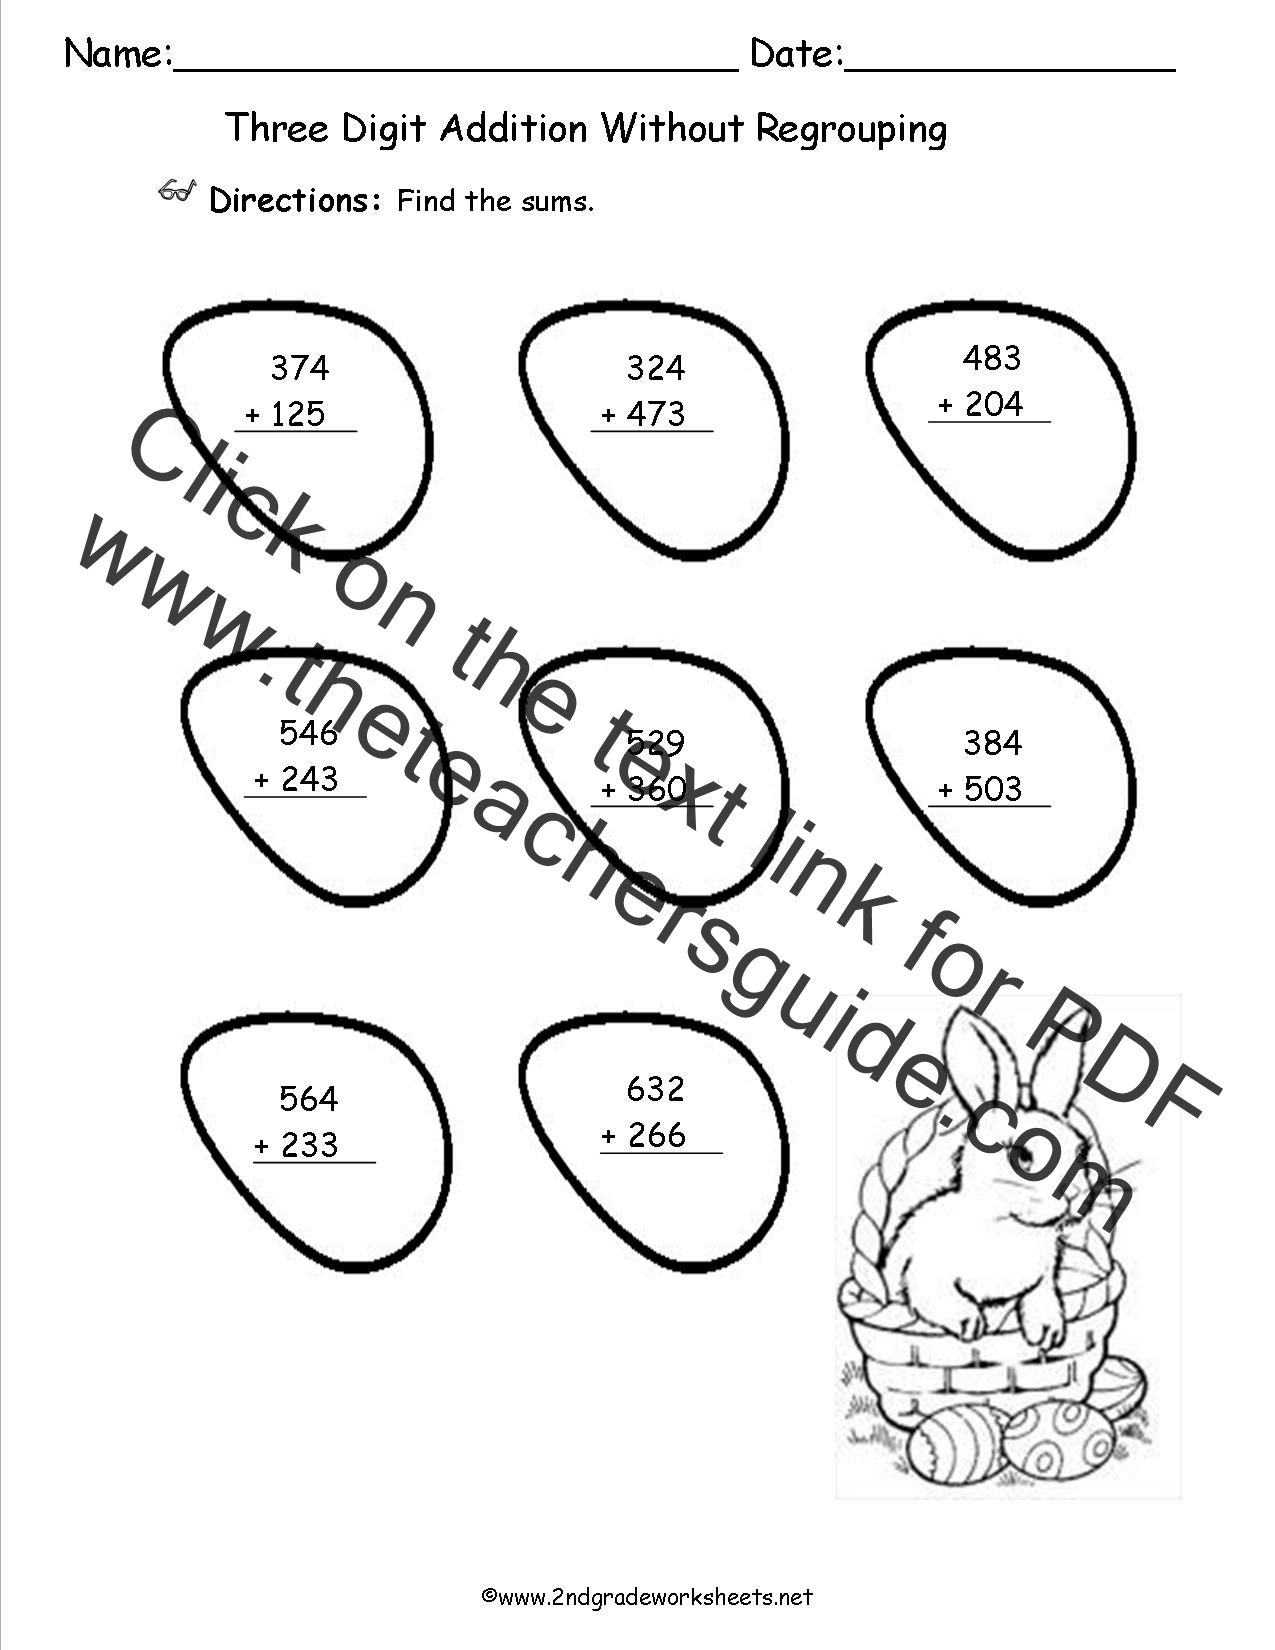 Easter Worksheets and Printouts – Double Digit Addition Without Regrouping Worksheets